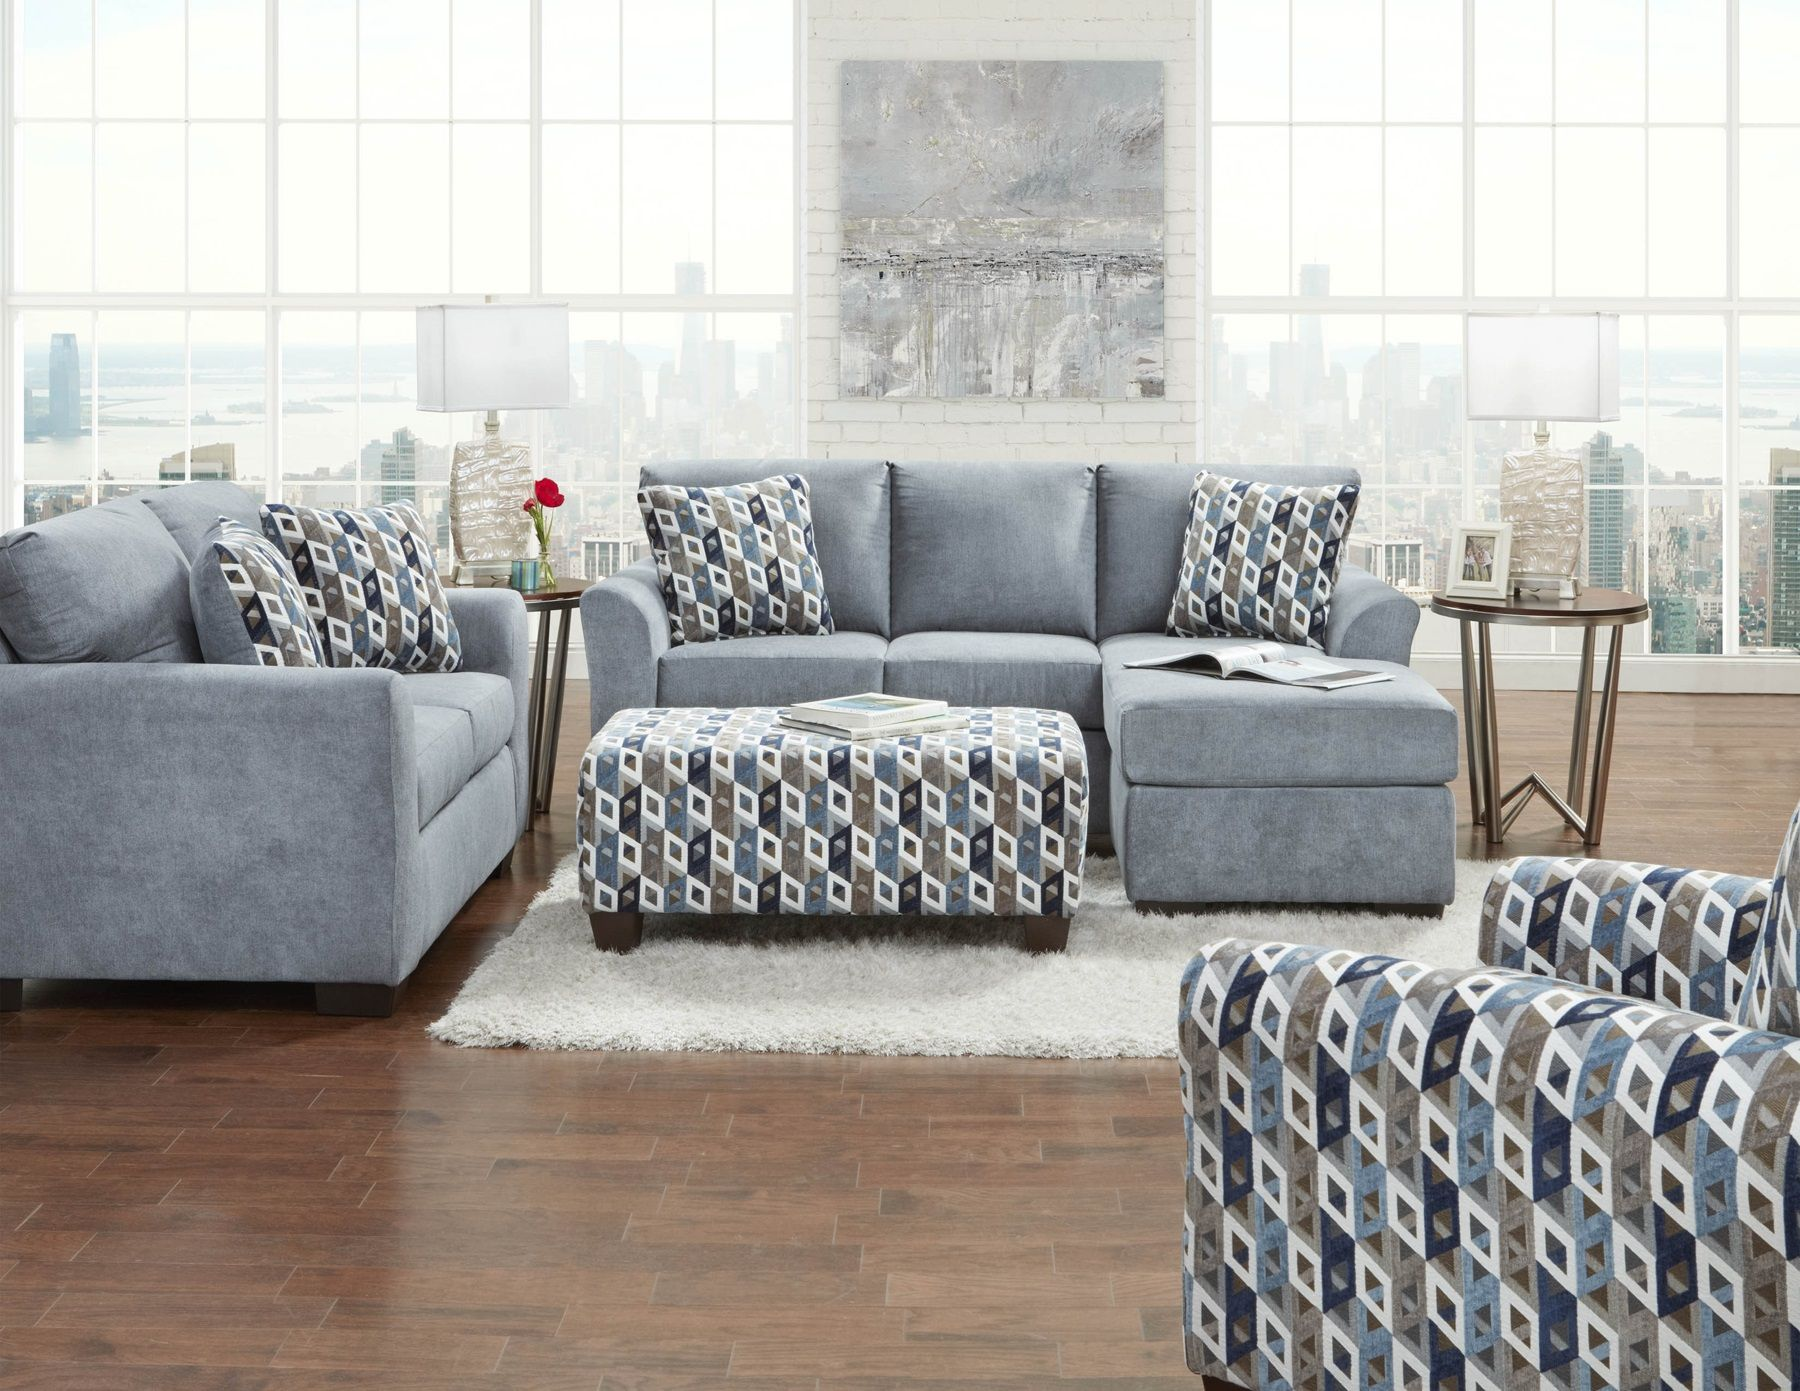 30++ Grey living room set with chaise information